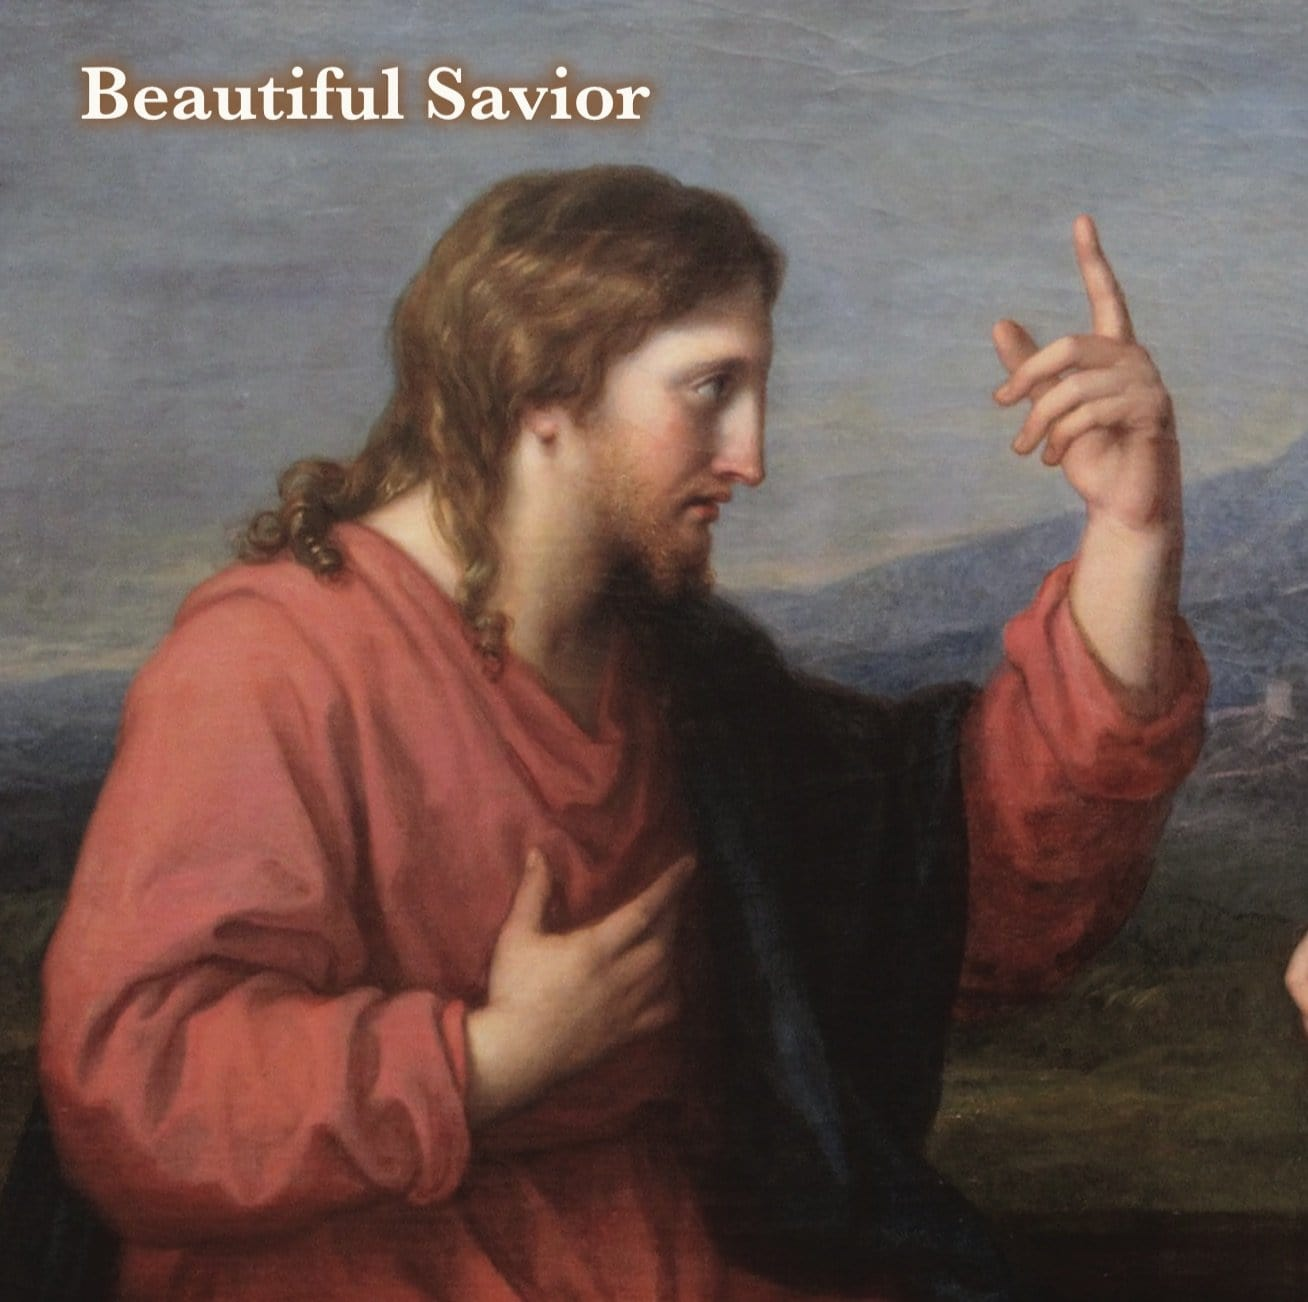 Beautiful Savior Hardcover books include recordings by TWO Choirs